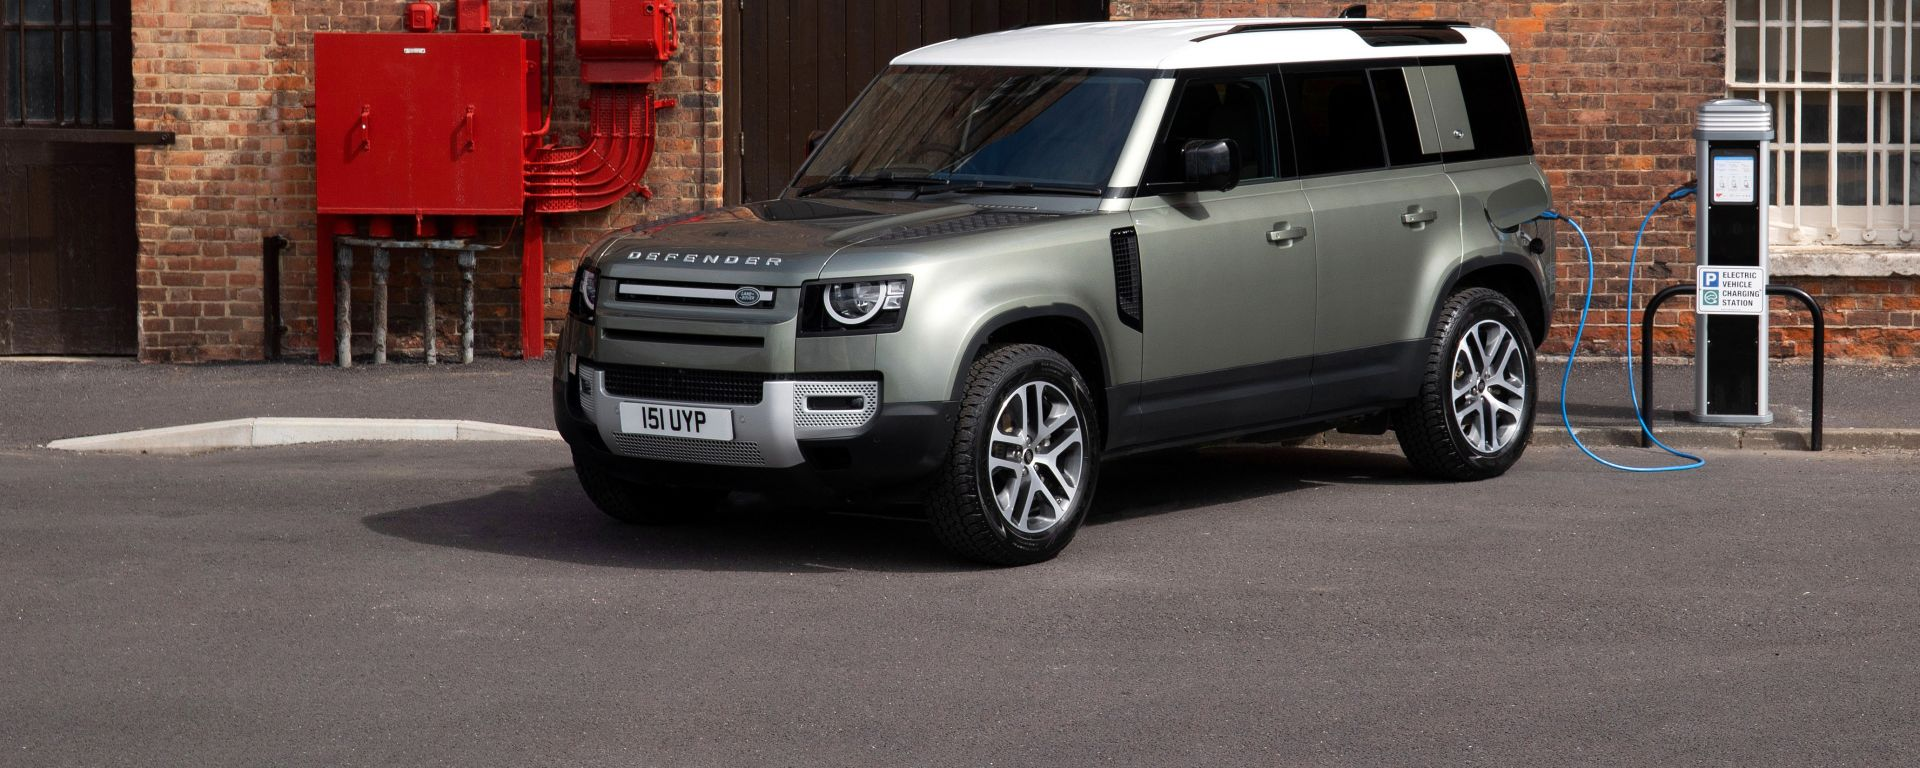 Land Rover Defender: in UK ora anche plug-in hybrid